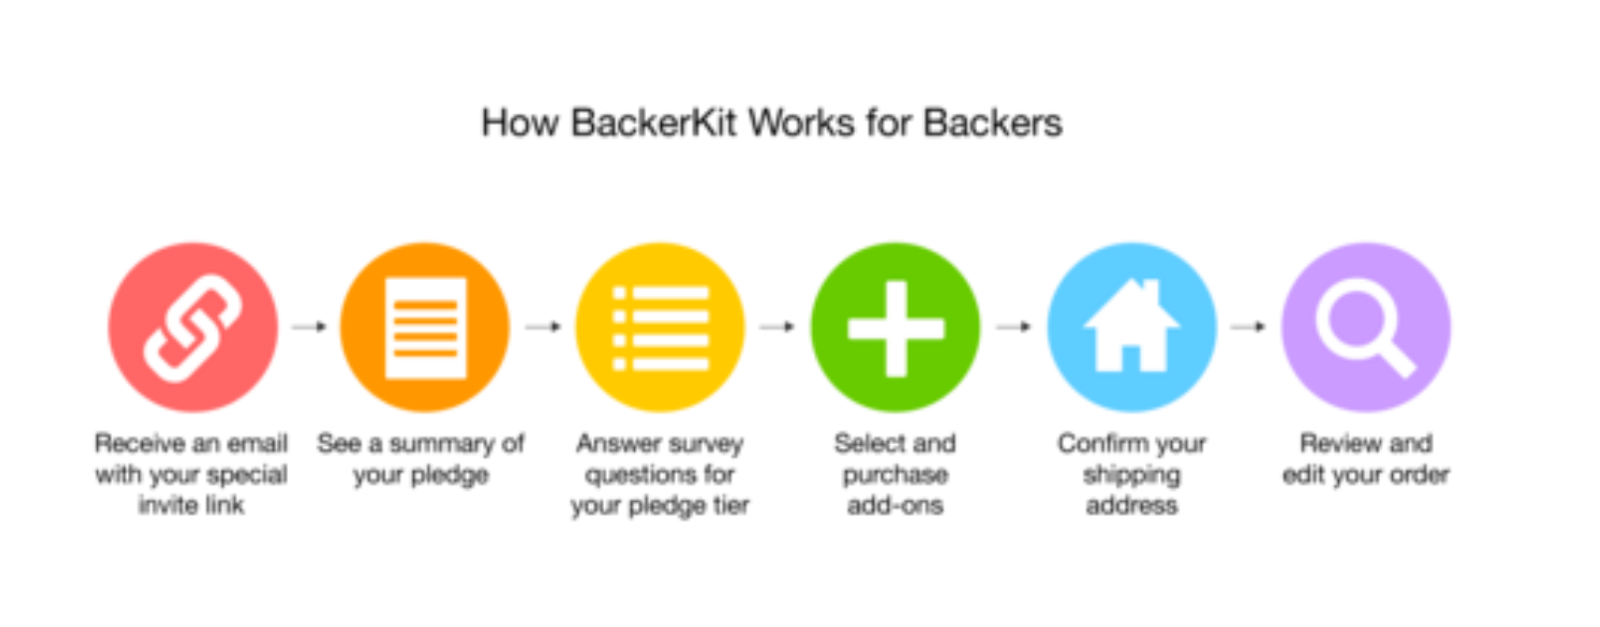 How Backerkit Works for Backers